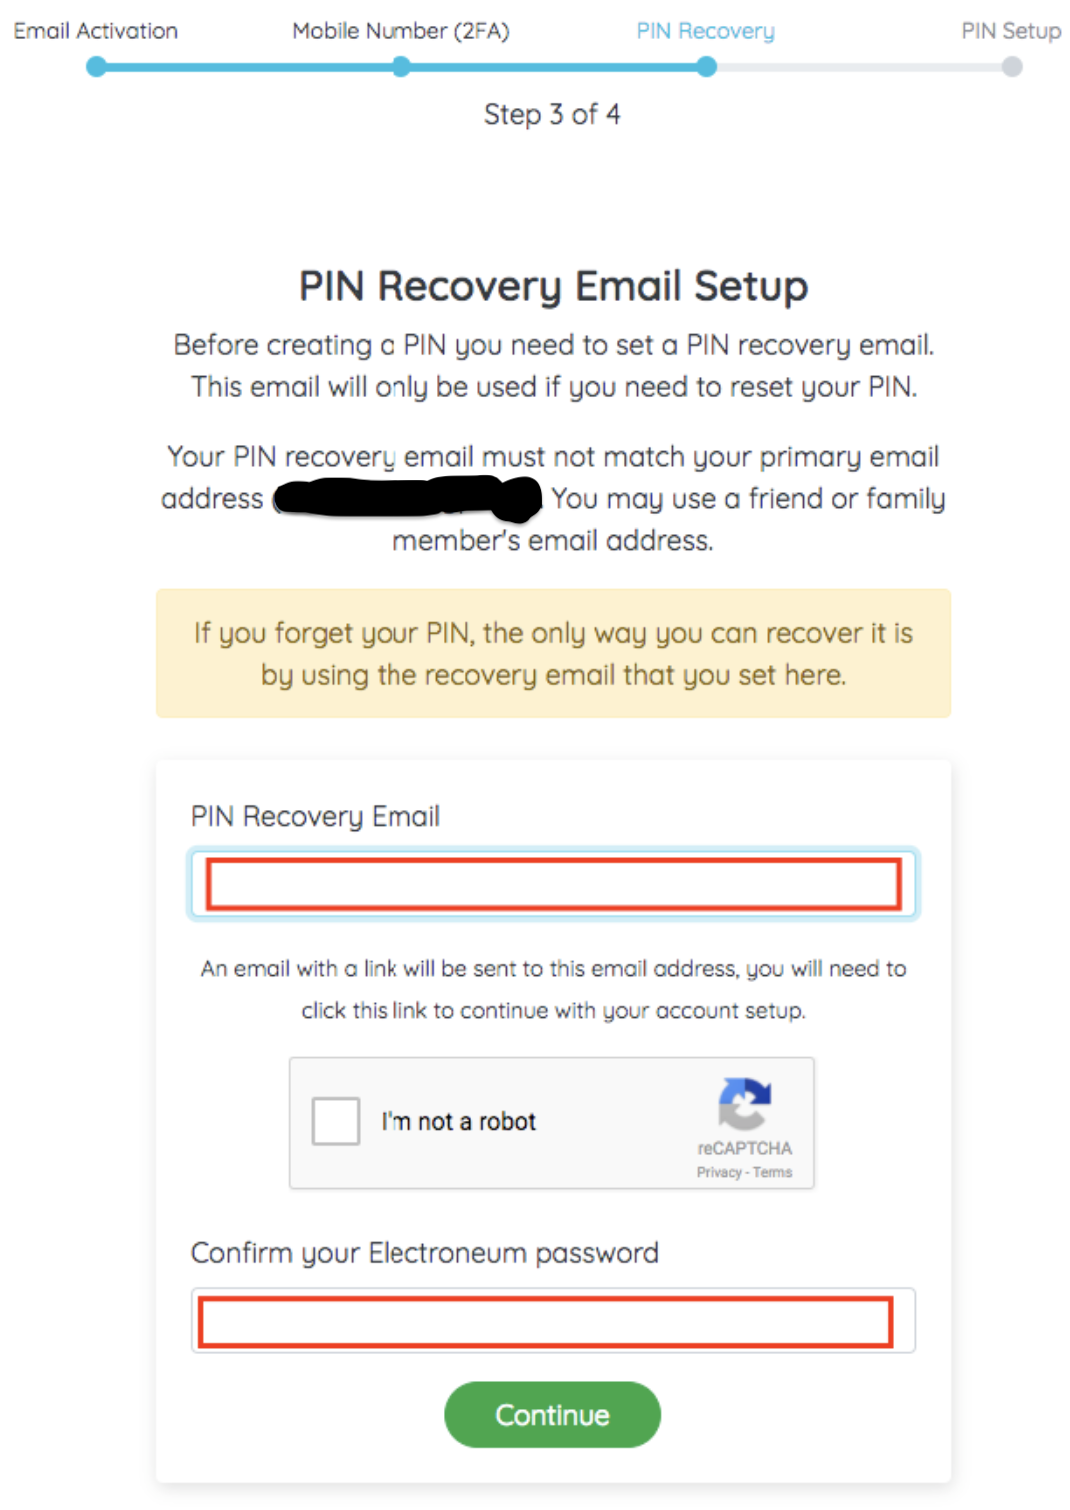 Wallet Recovery Email Setup